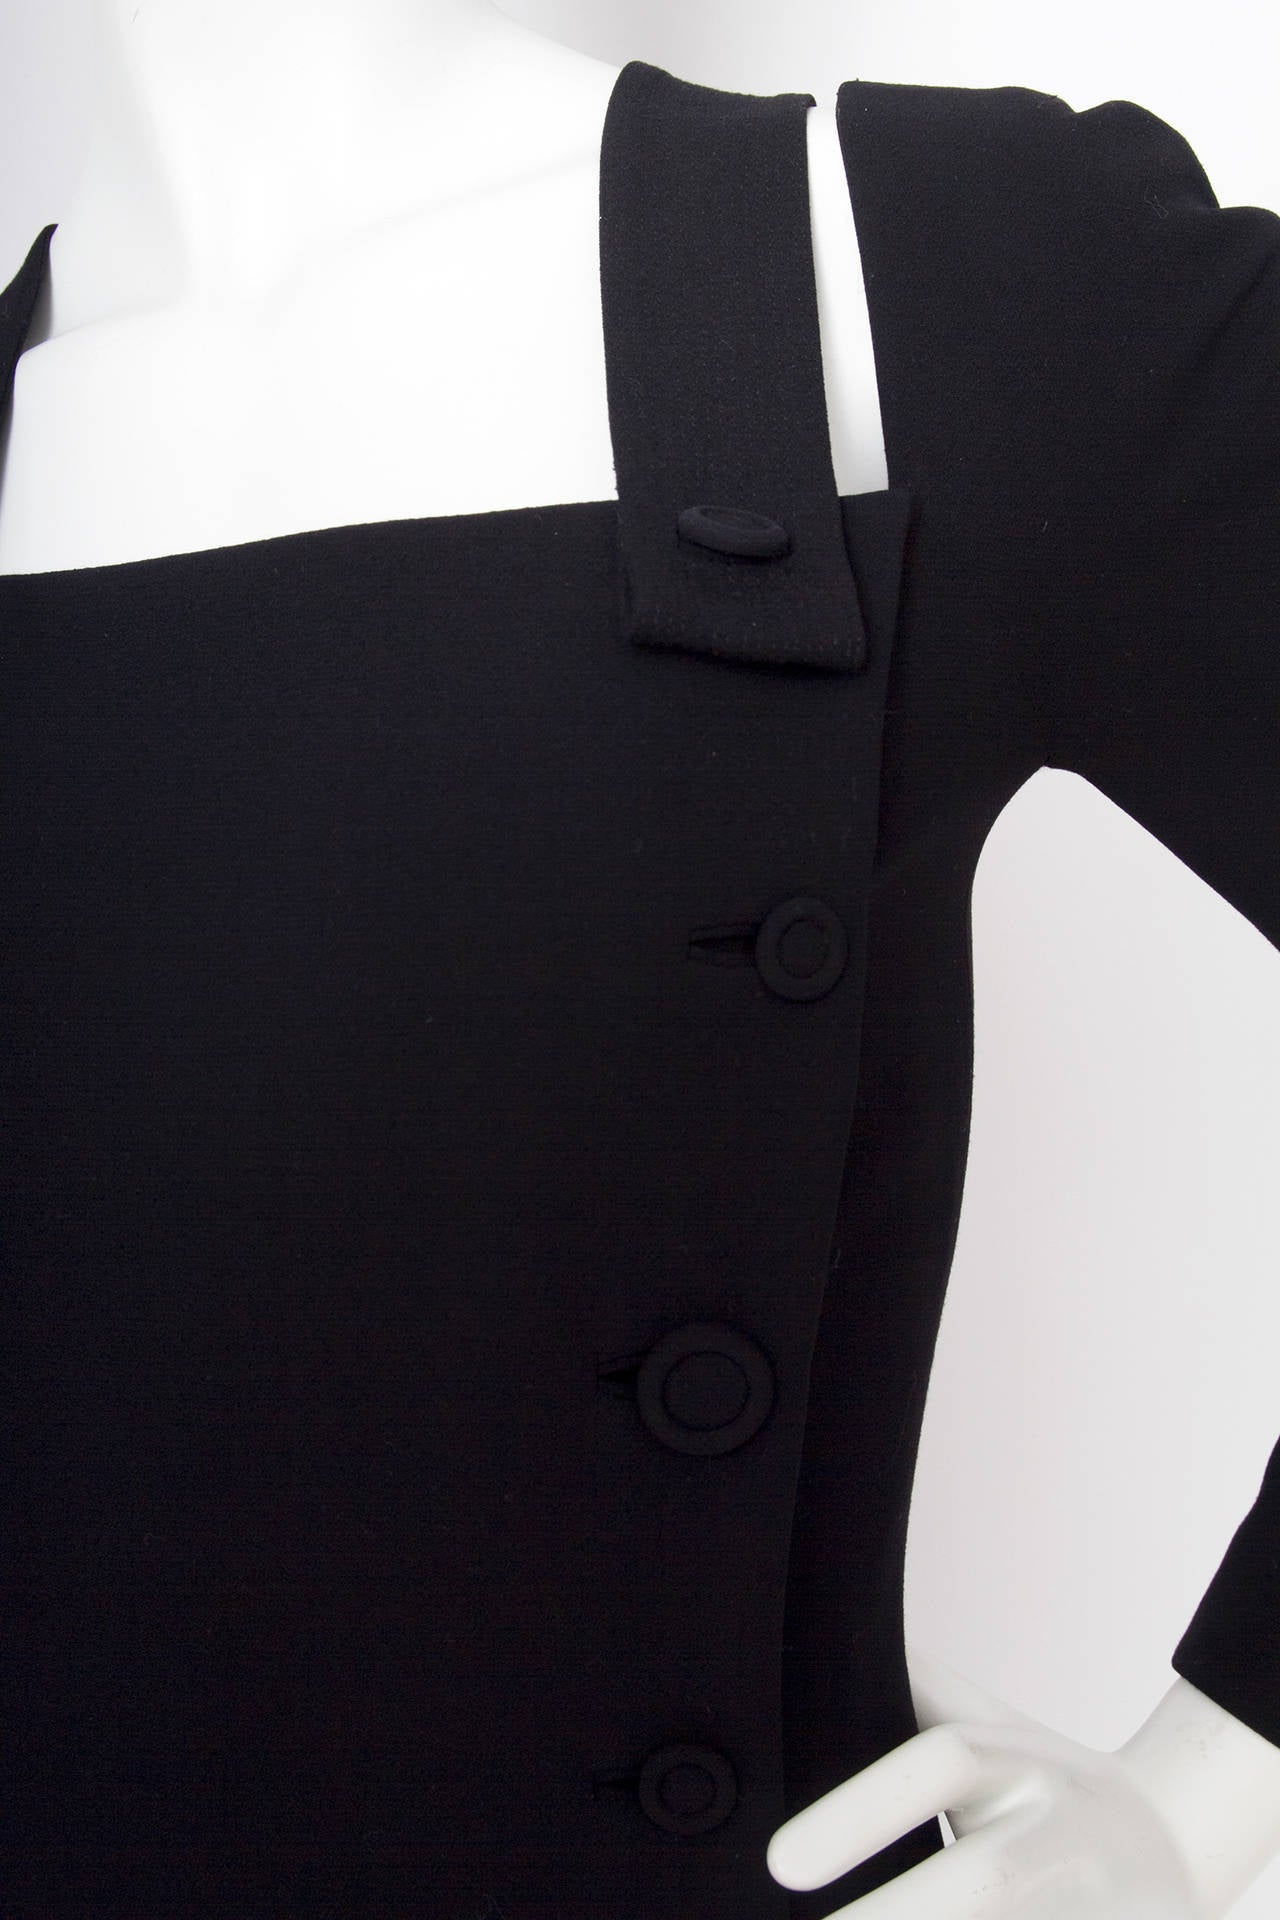 1980s Gianni Versace Couture Wool Little Black Dress For Sale 2